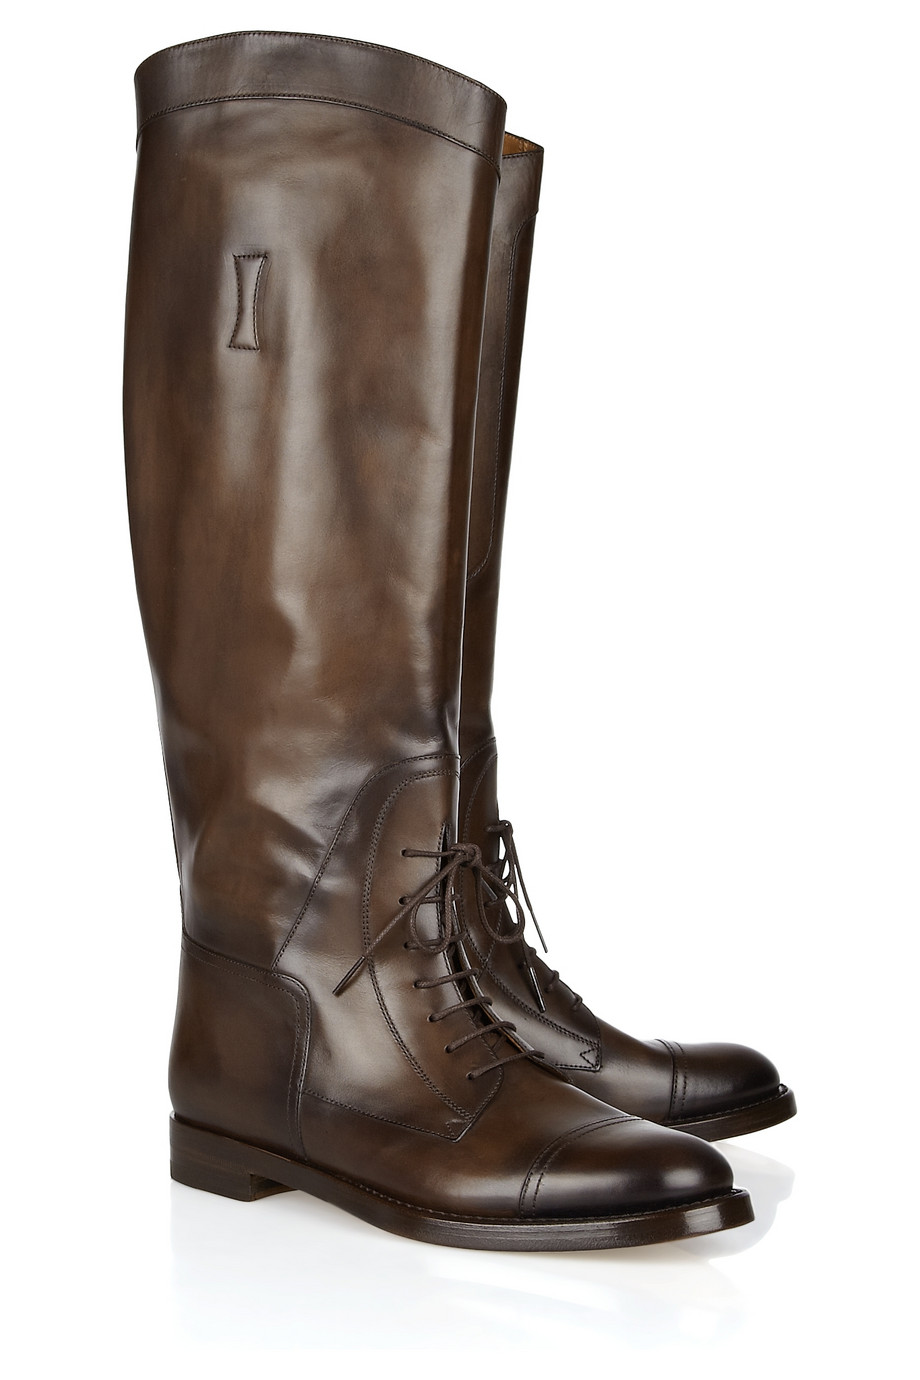 5d91db501 Lyst - Gucci Laceup Leather Riding Boots in Brown